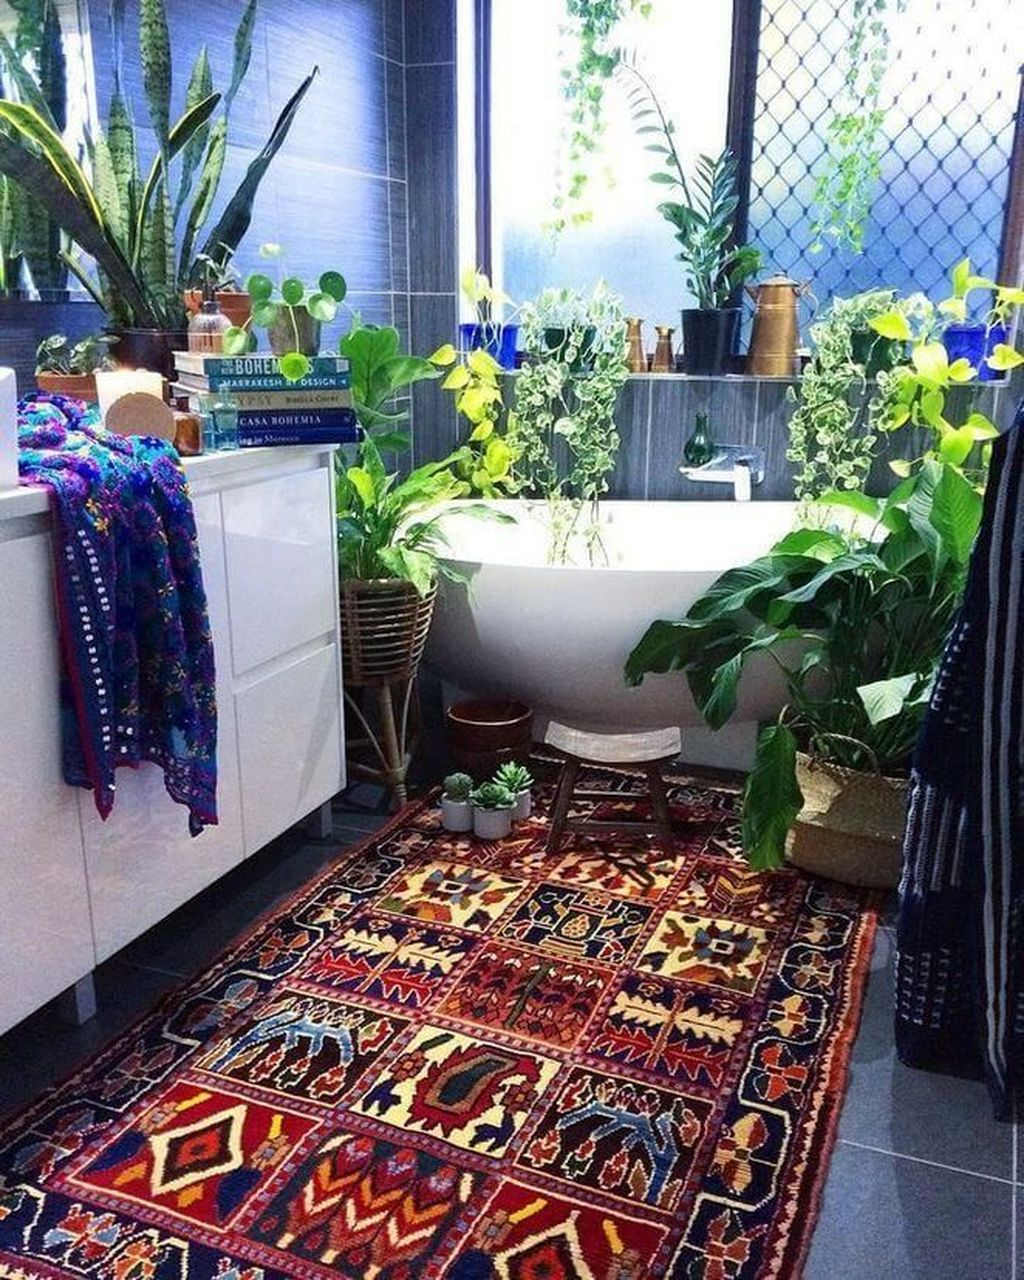 The Best Jungle Bathroom Decor Ideas To Get A Natural Impression 31